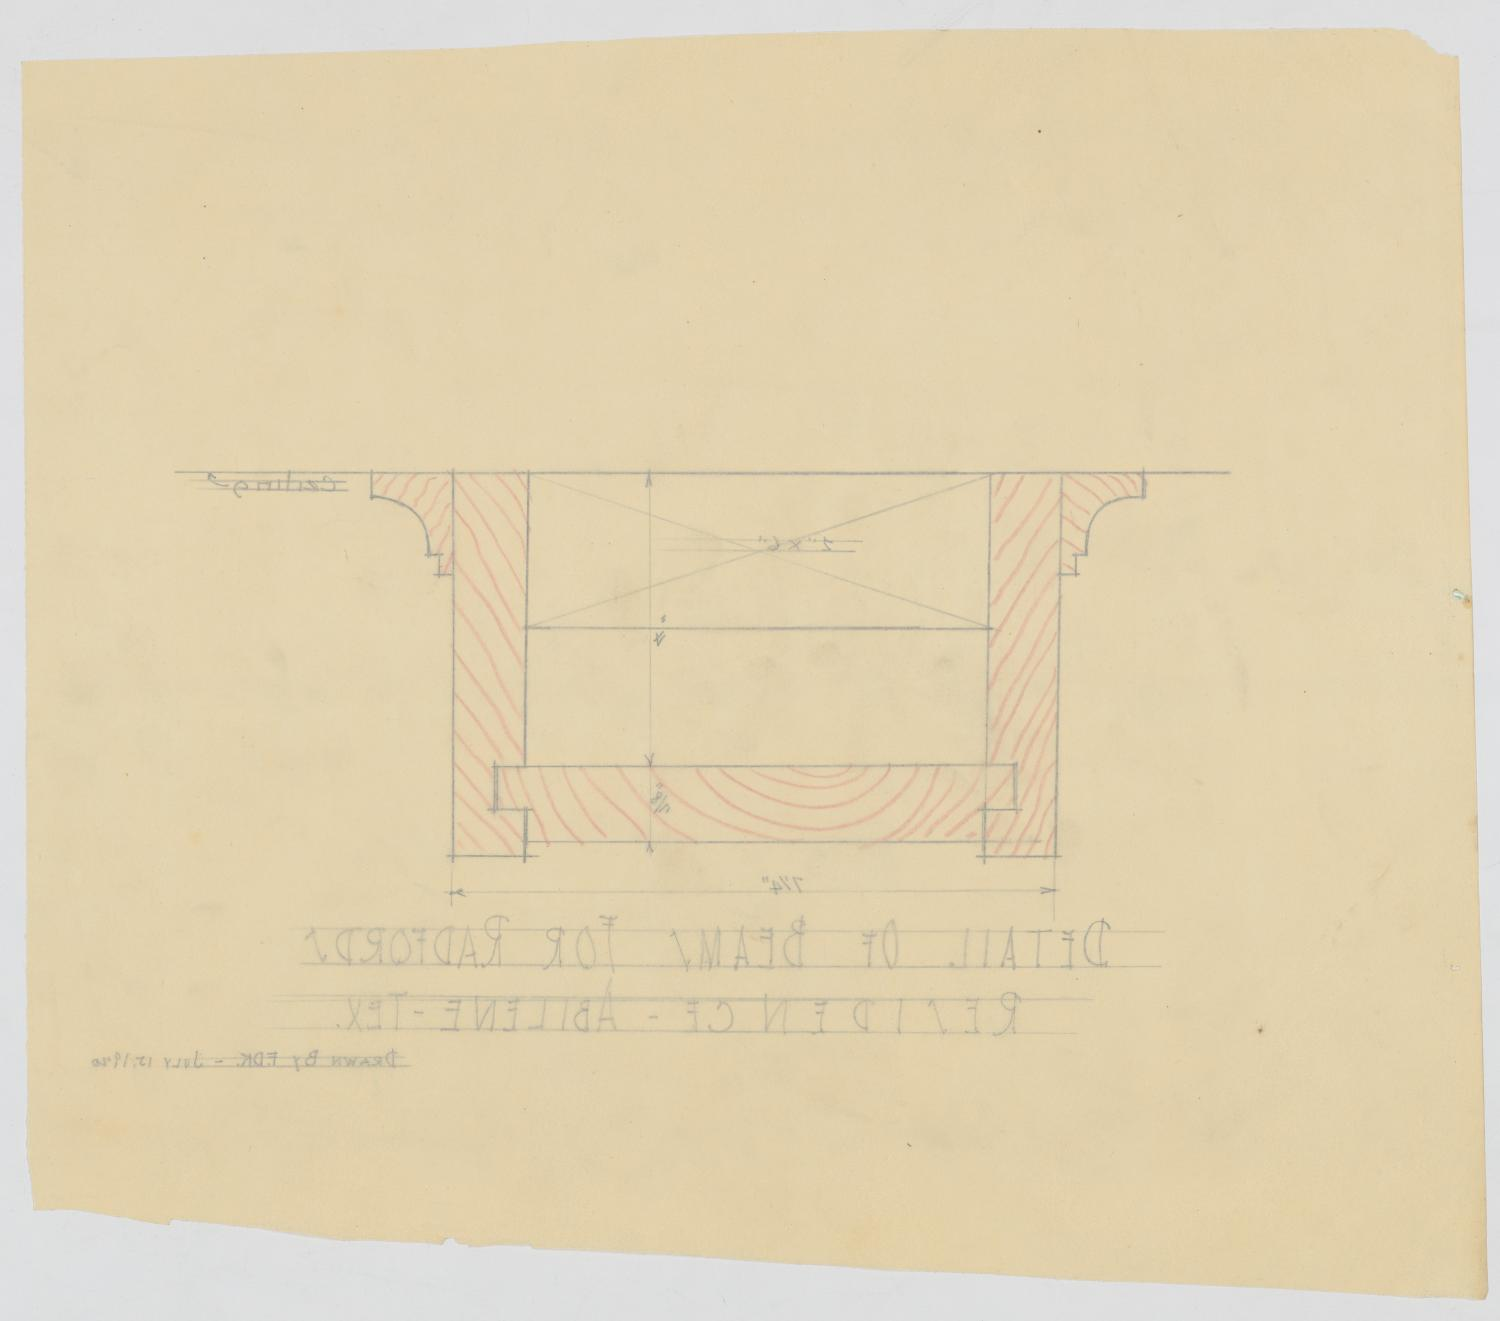 Radford Residence Addition, Abilene, Texas: Beams                                                                                                      [Sequence #]: 2 of 2